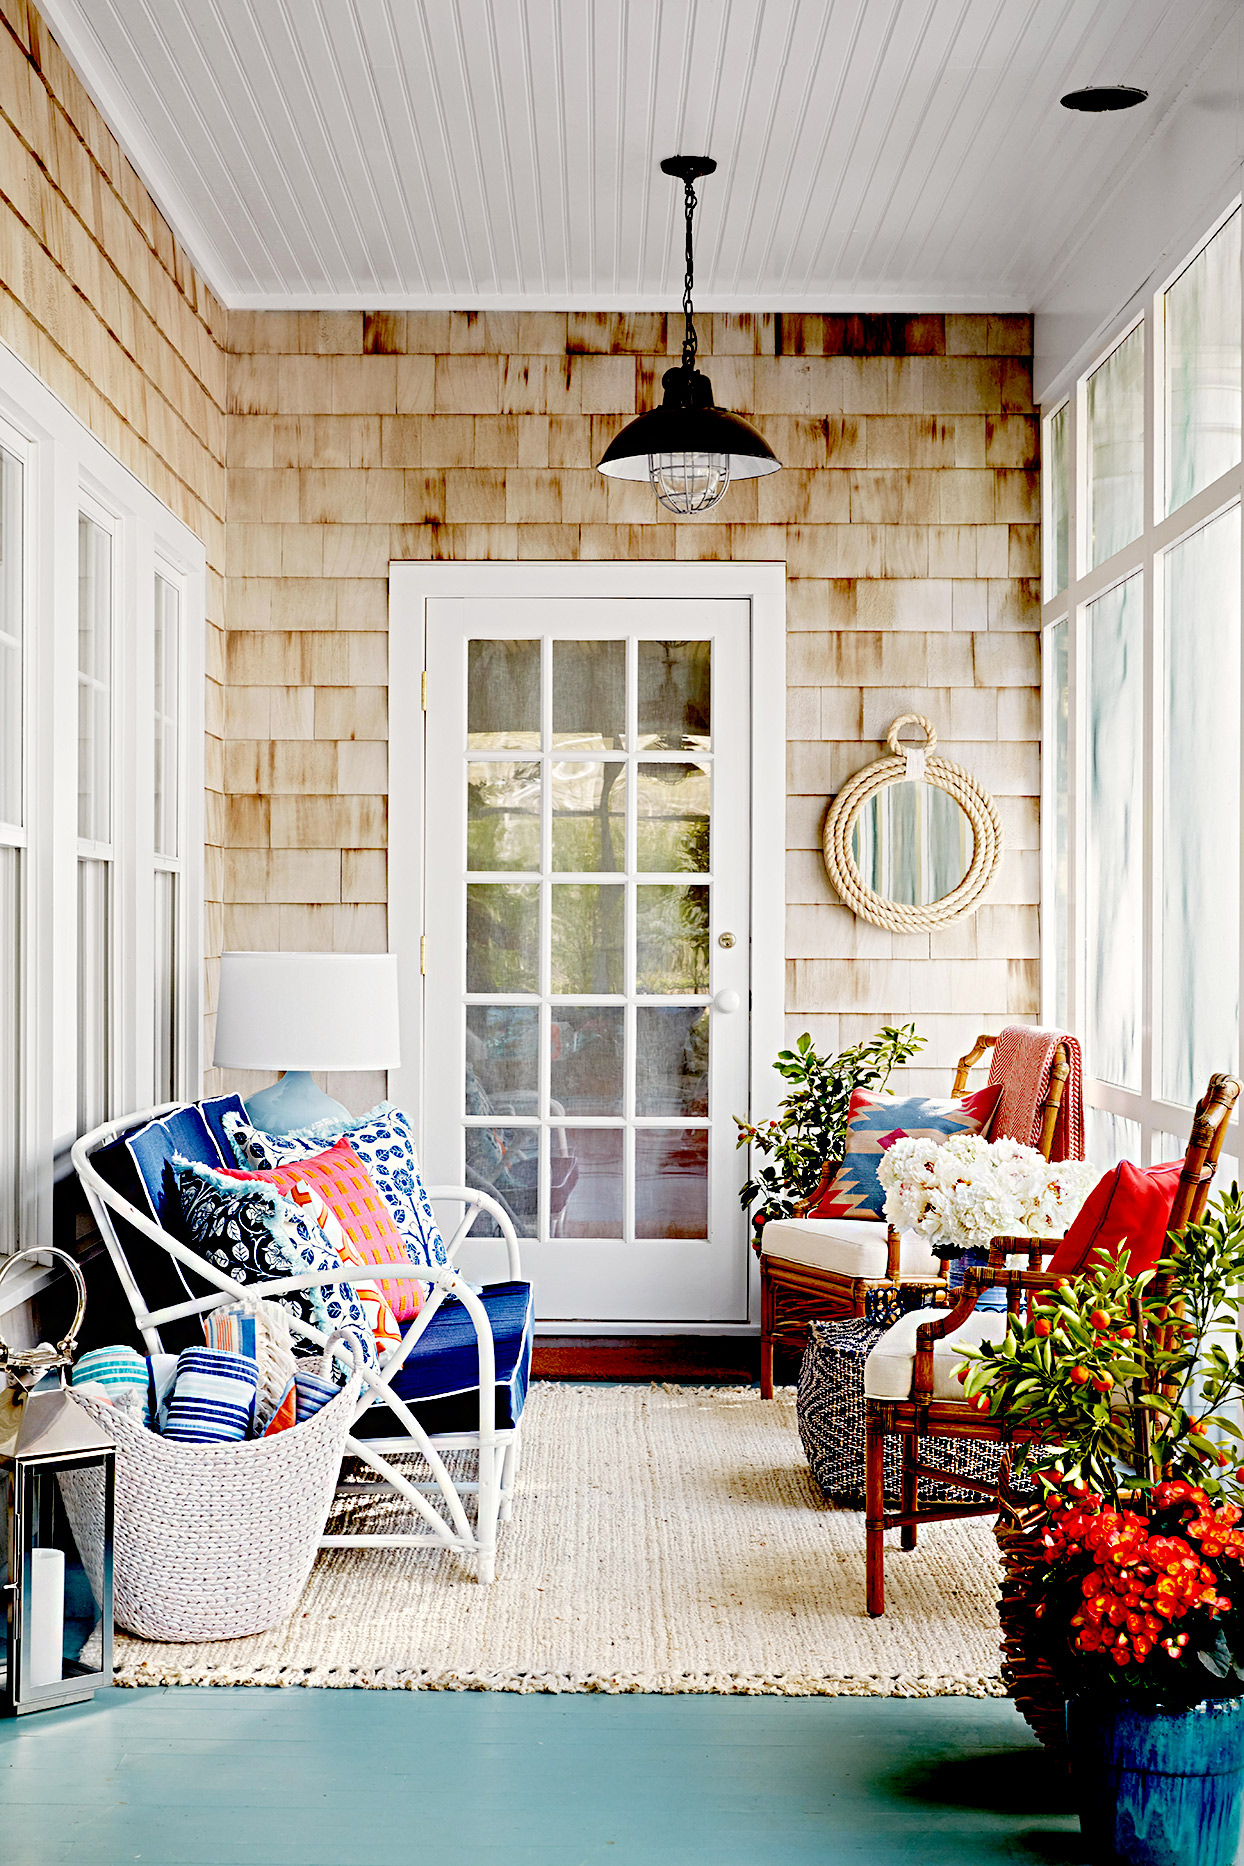 Porch with couch, wicker chairs